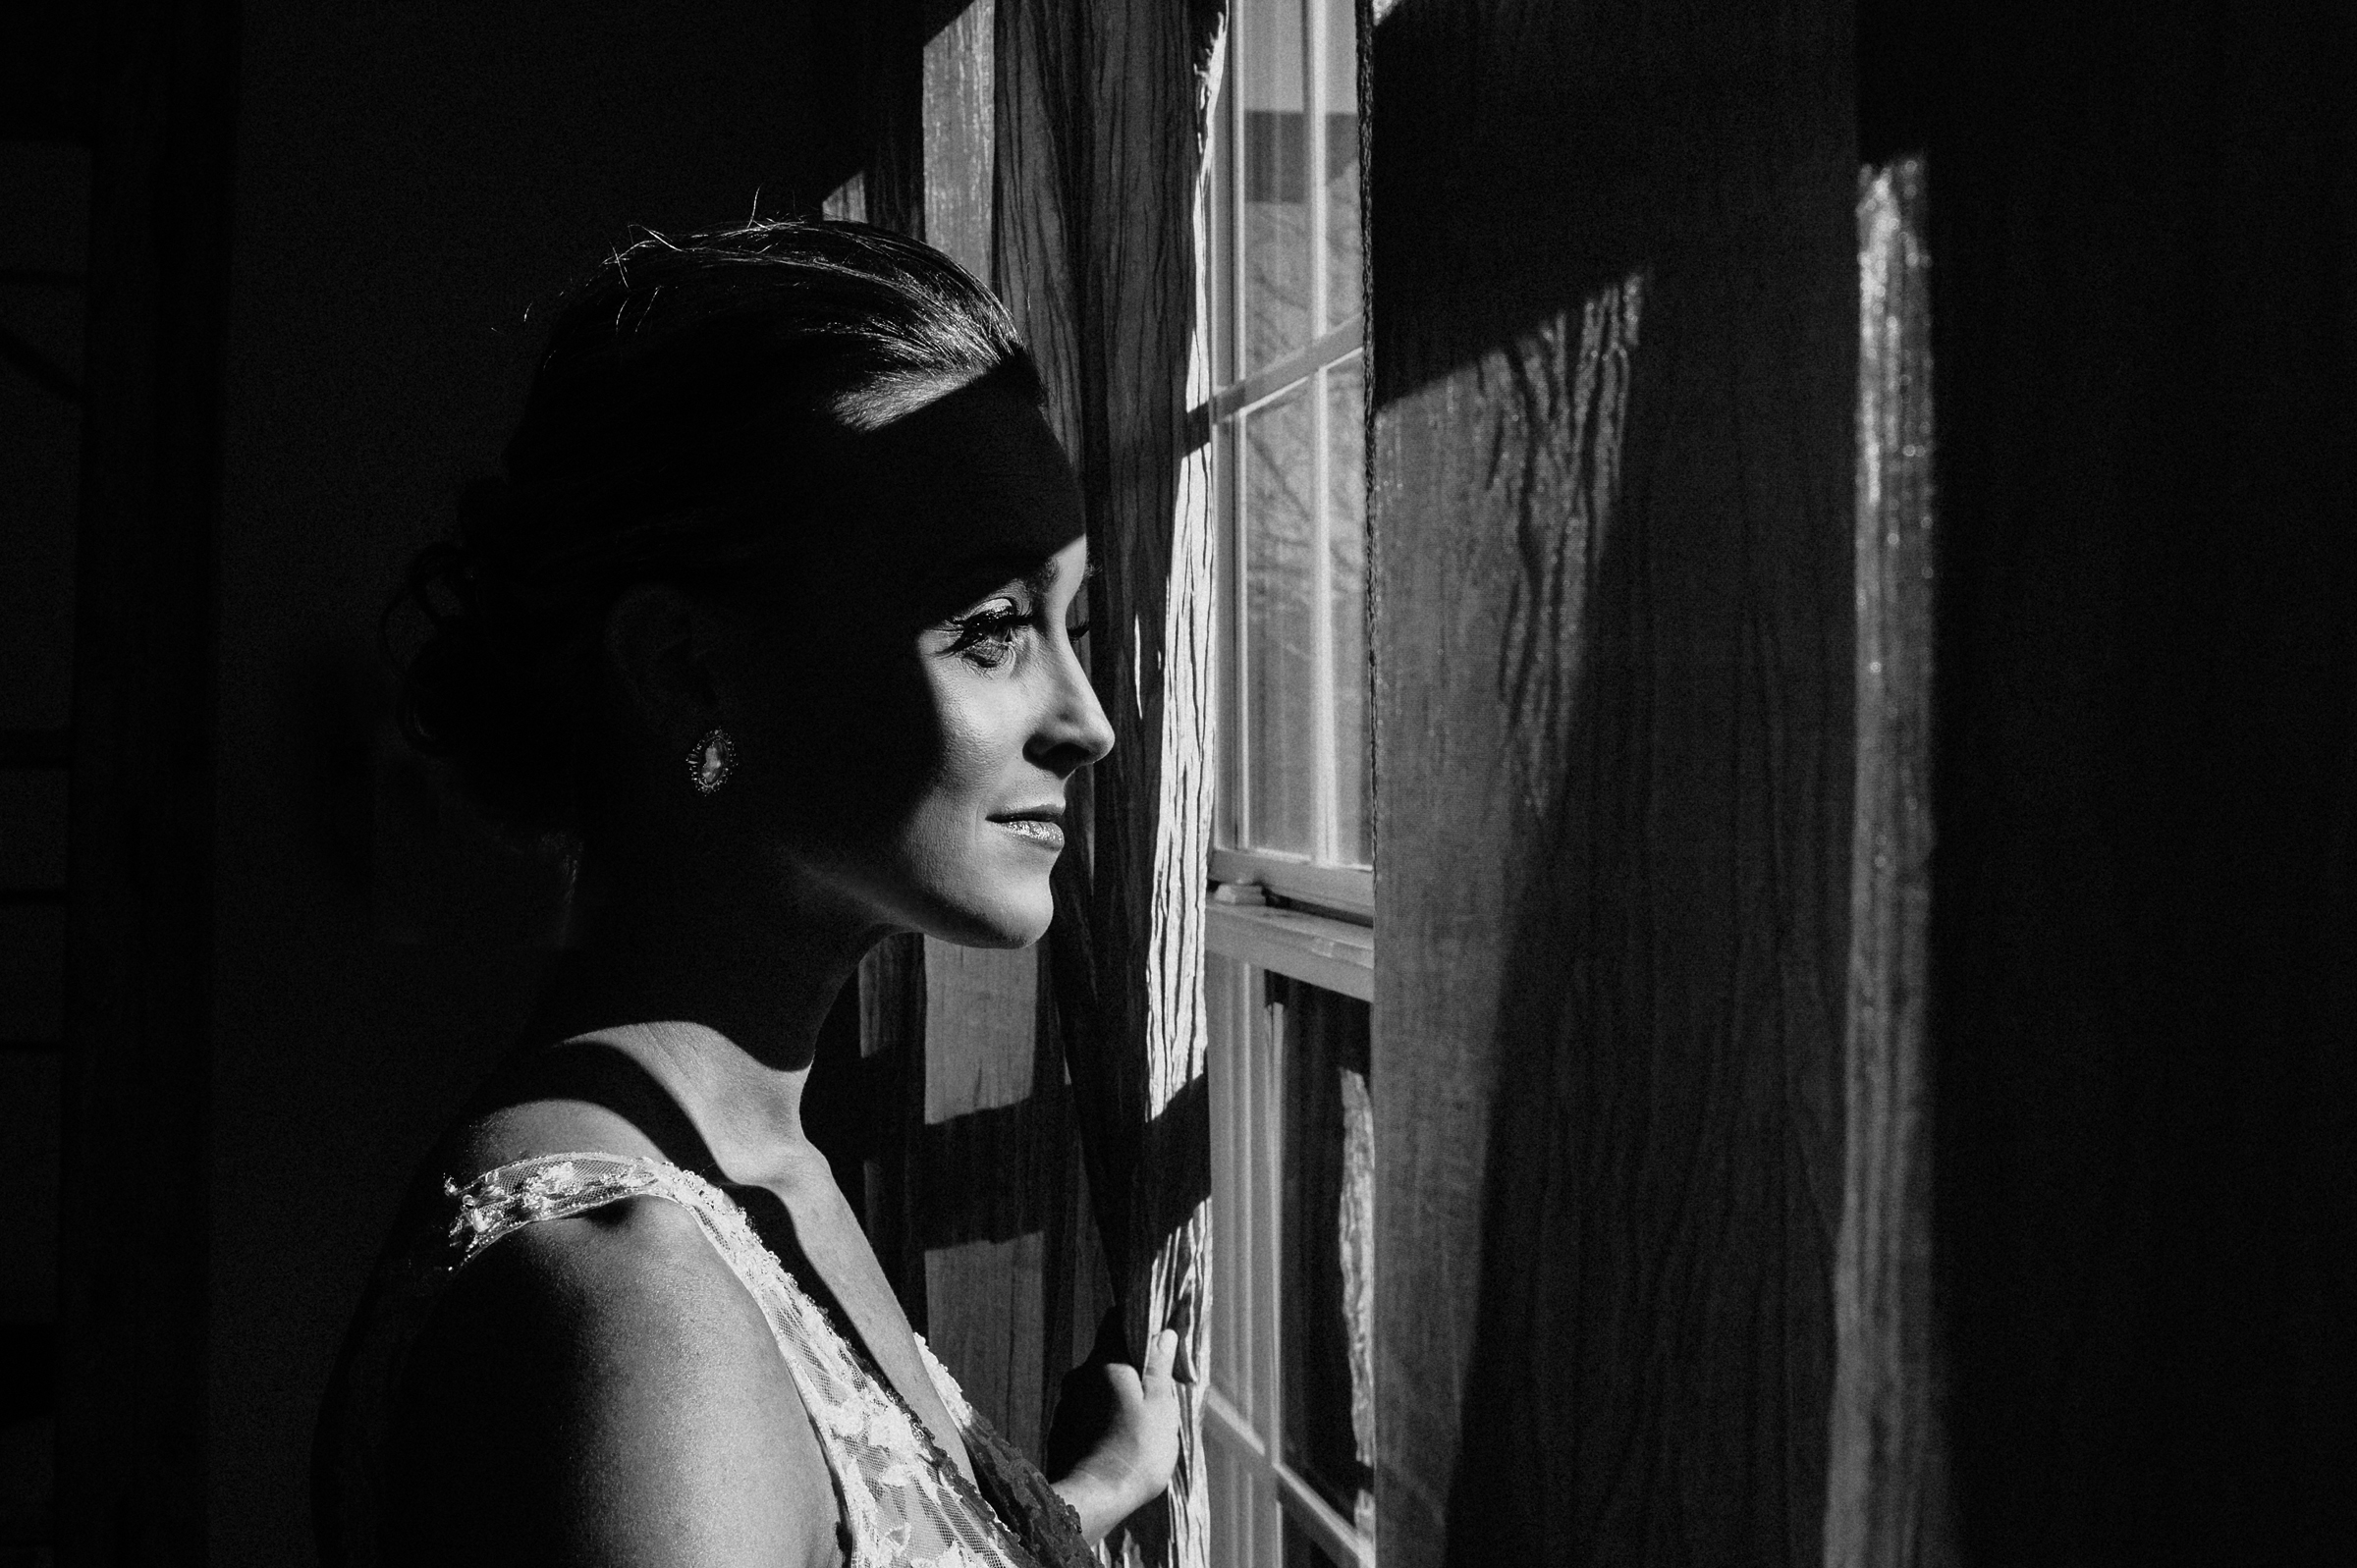 Artistic black and white image of bride looking out window